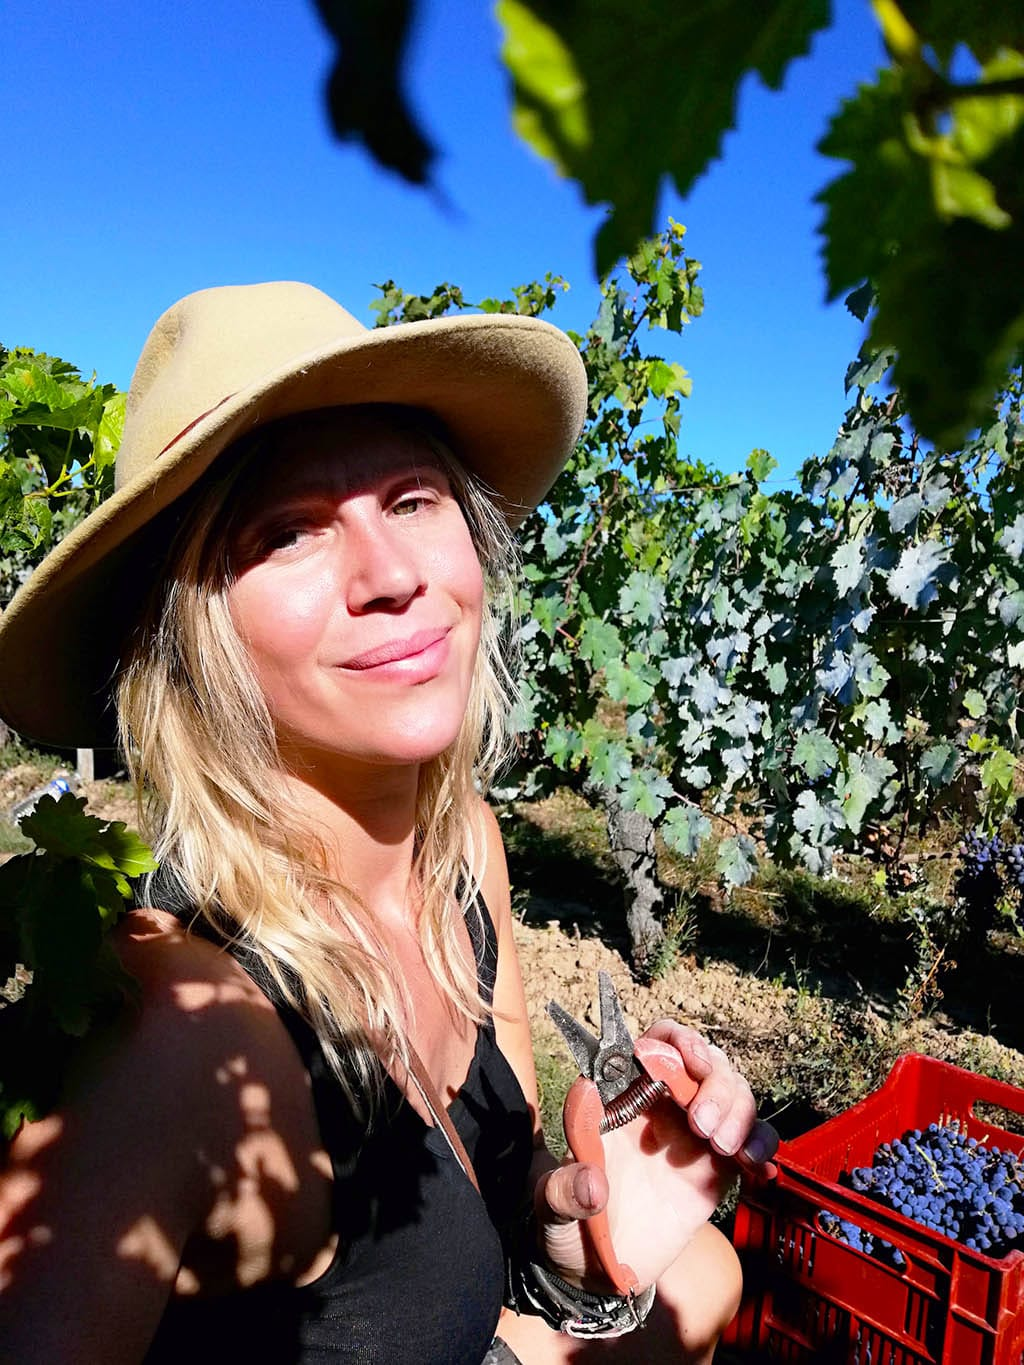 Loes doing grape harvest